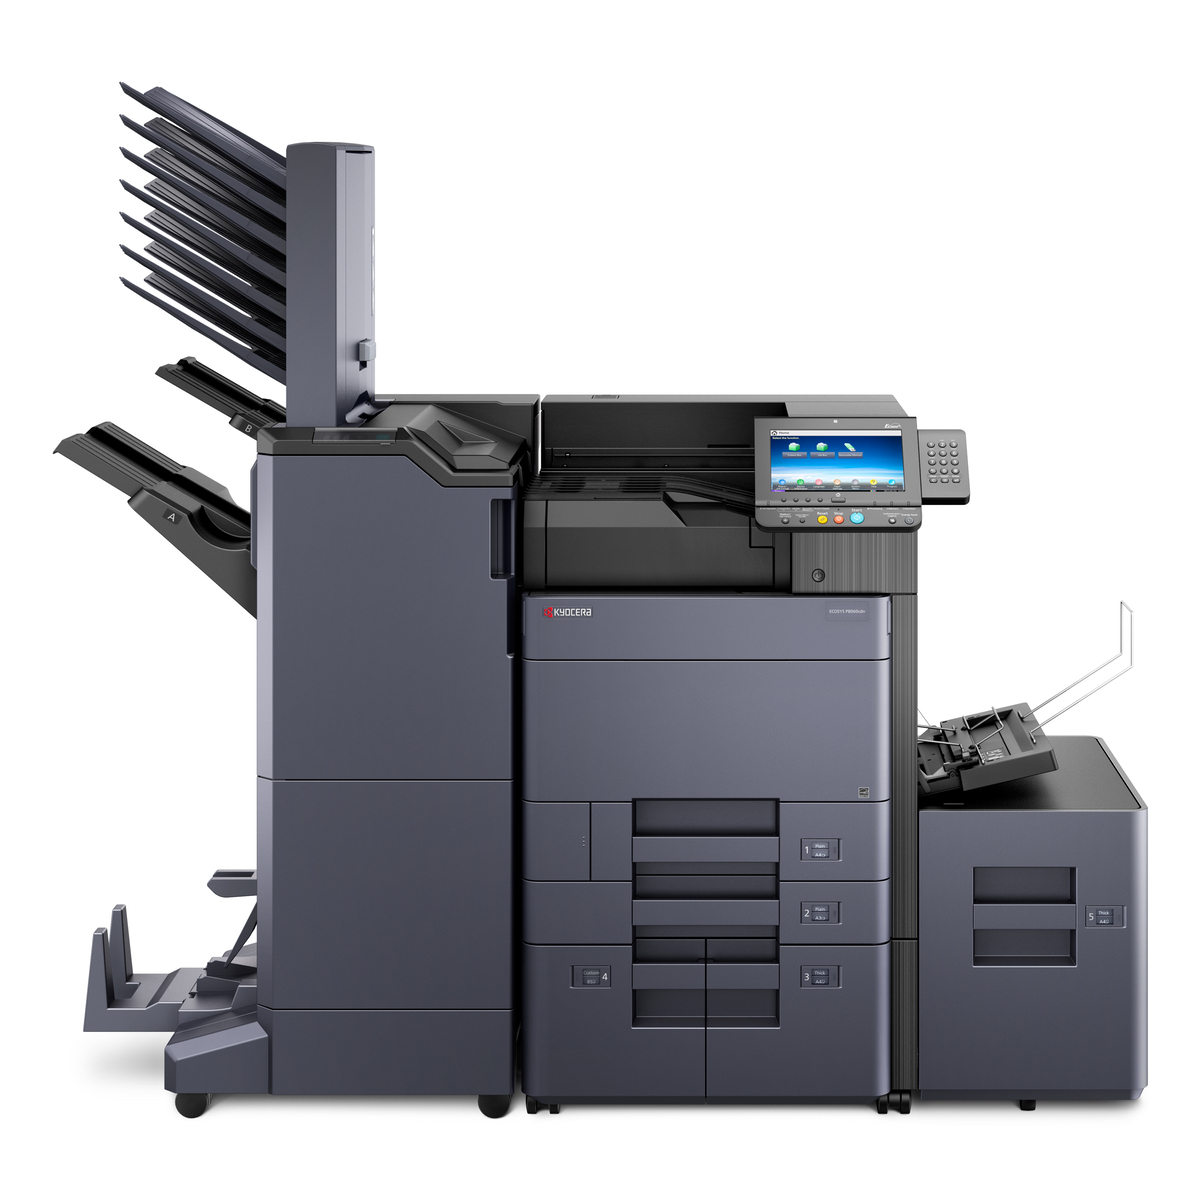 Kyocera ECOSYS P8060cdn Printer